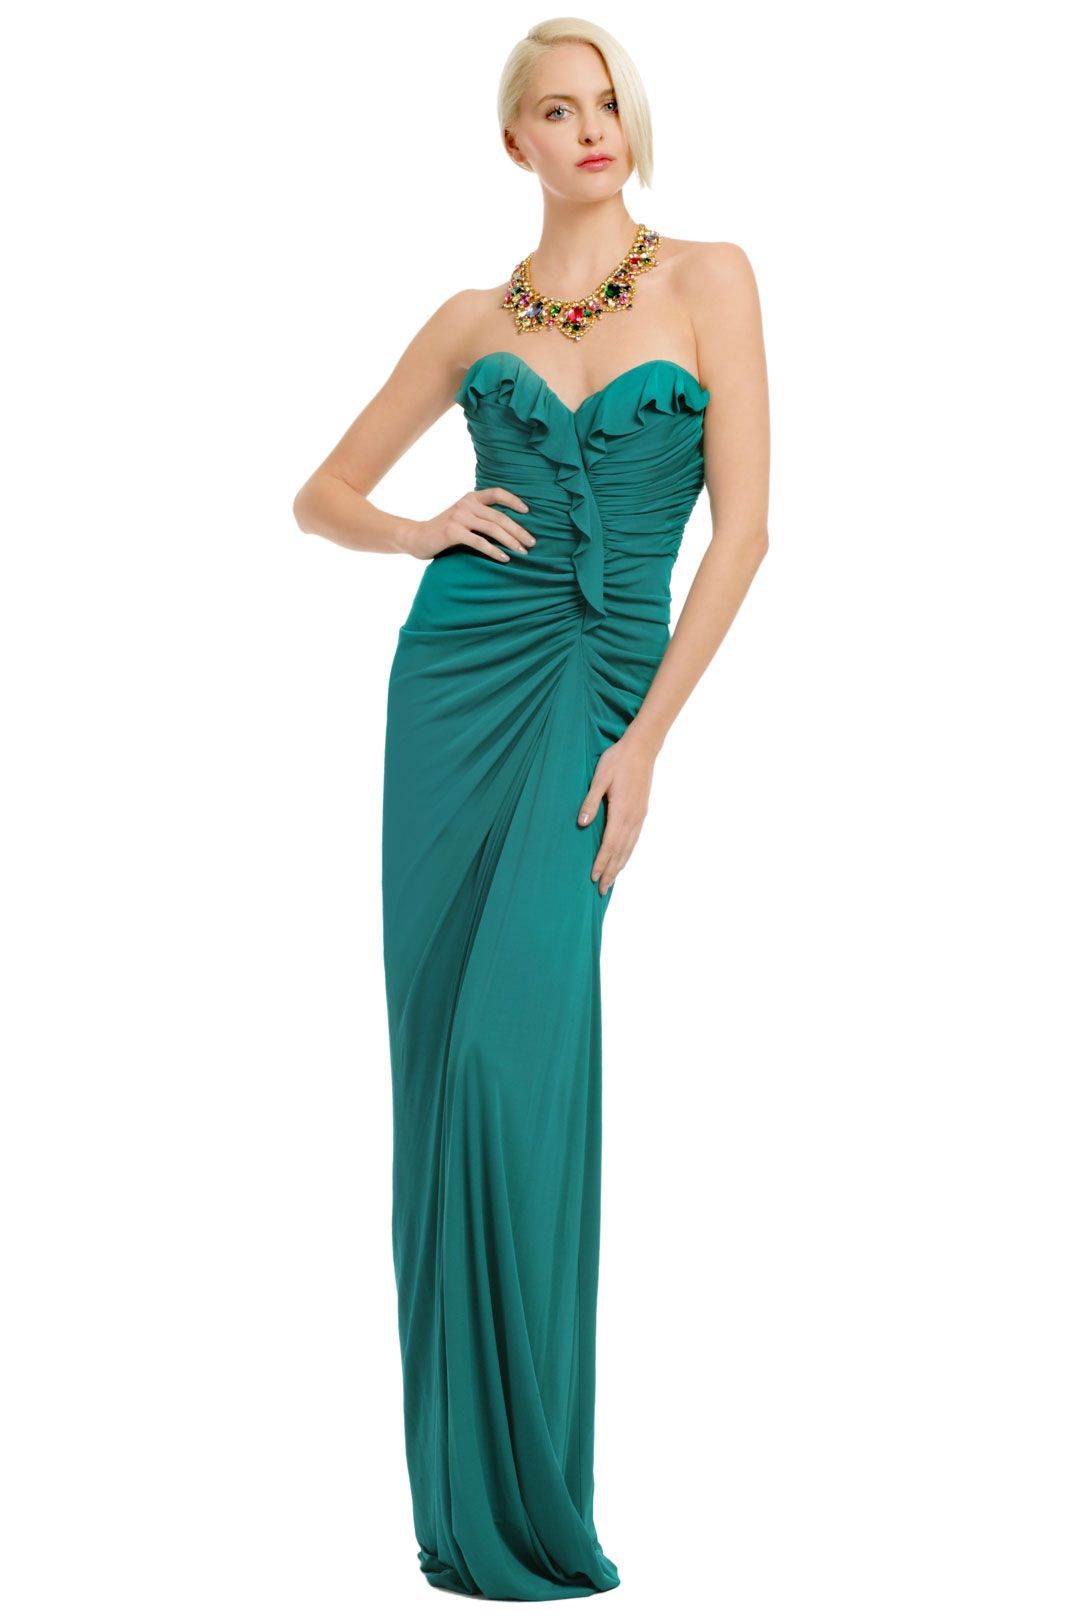 Aqua Queen Gown $125 Runs true to size but top may fold over.